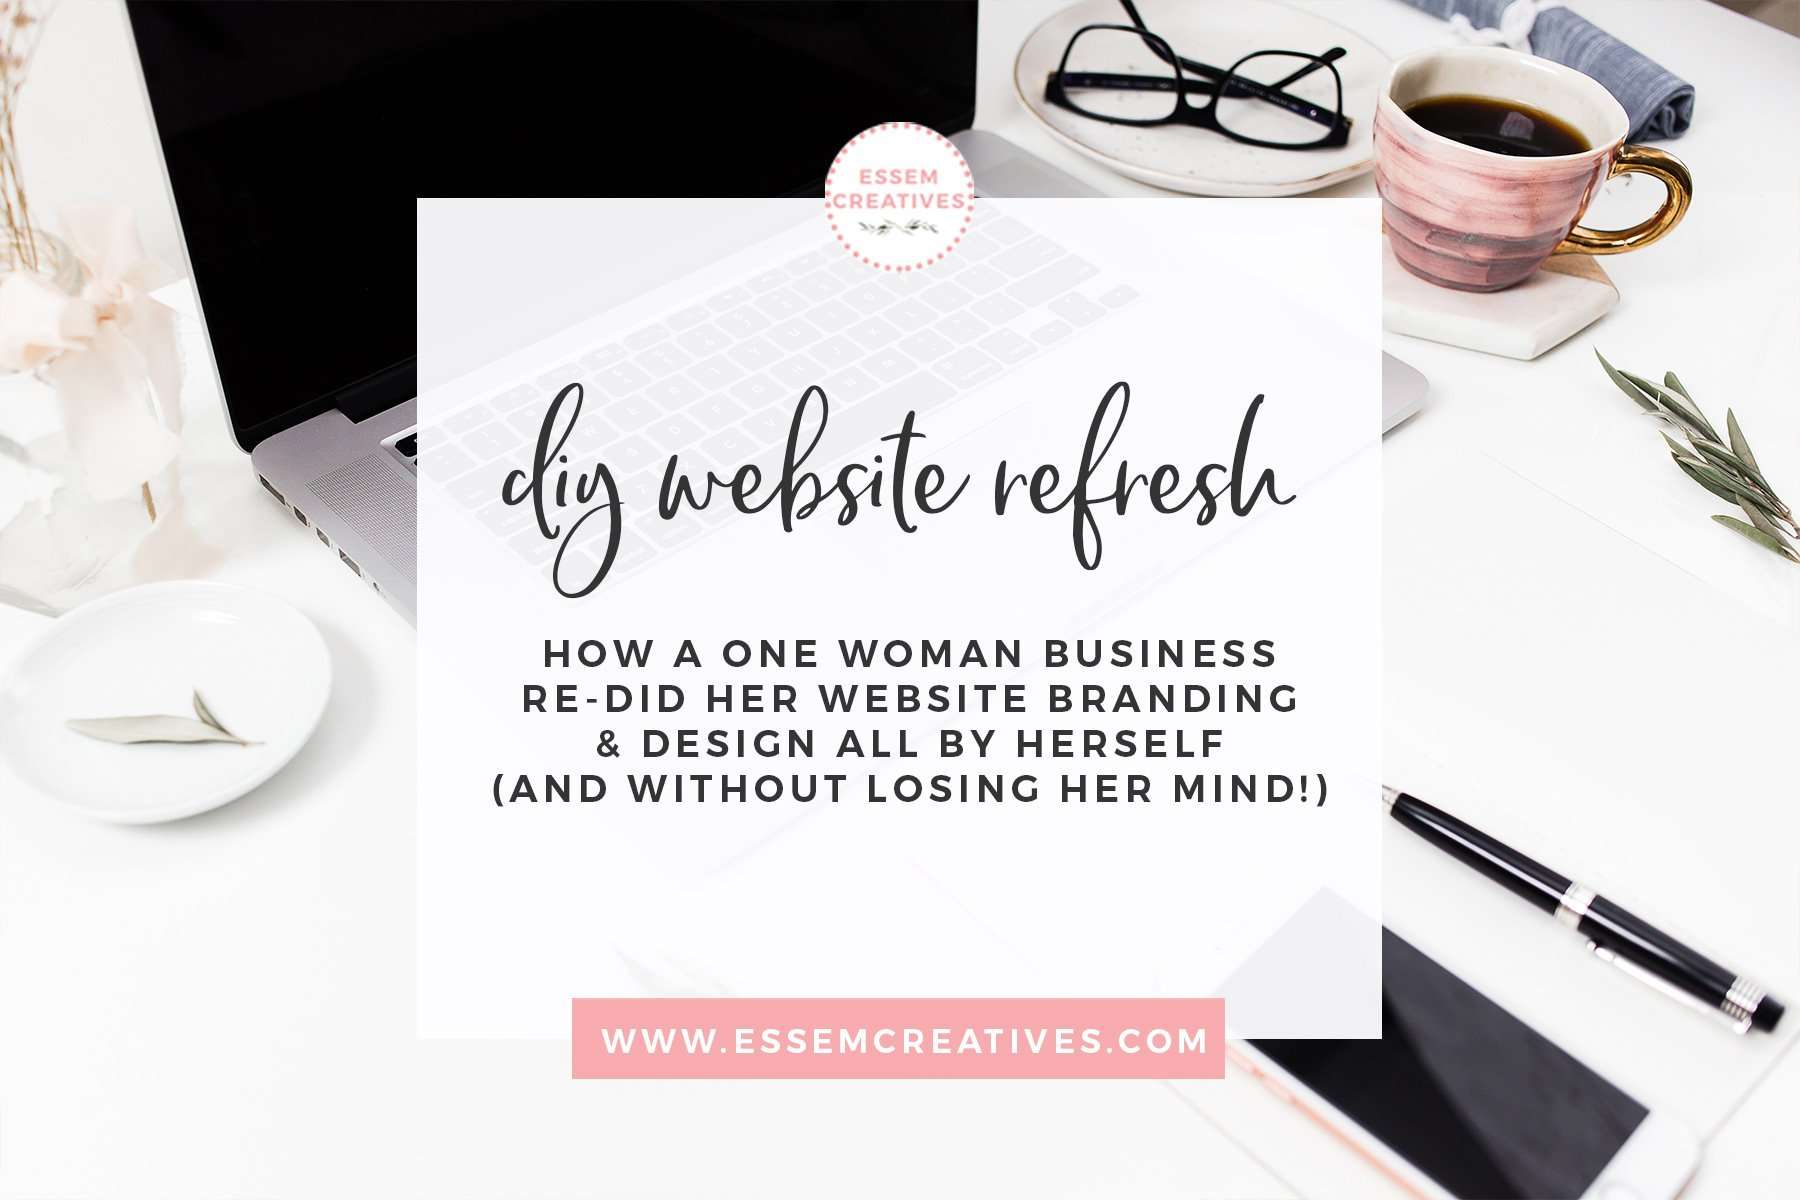 Many small businesses are choosing to buy digital graphics, clipart and stock photos to do their own blog branding. Armed with some inspiration from Pinterest, and with premium high resolution graphics on hand, you too can take the plunge and get this project done!   I had the opportunity to interview one such business owner, Emma Jane, of Atalya Designs. She recently did a brand refresh and redesigned her website to reflect her new branding. She used this set of Watercolor Greenery Graphics for this project. Was it worth it? Click to see what she has to say>> #webdesign #blogbranding #websitedesign